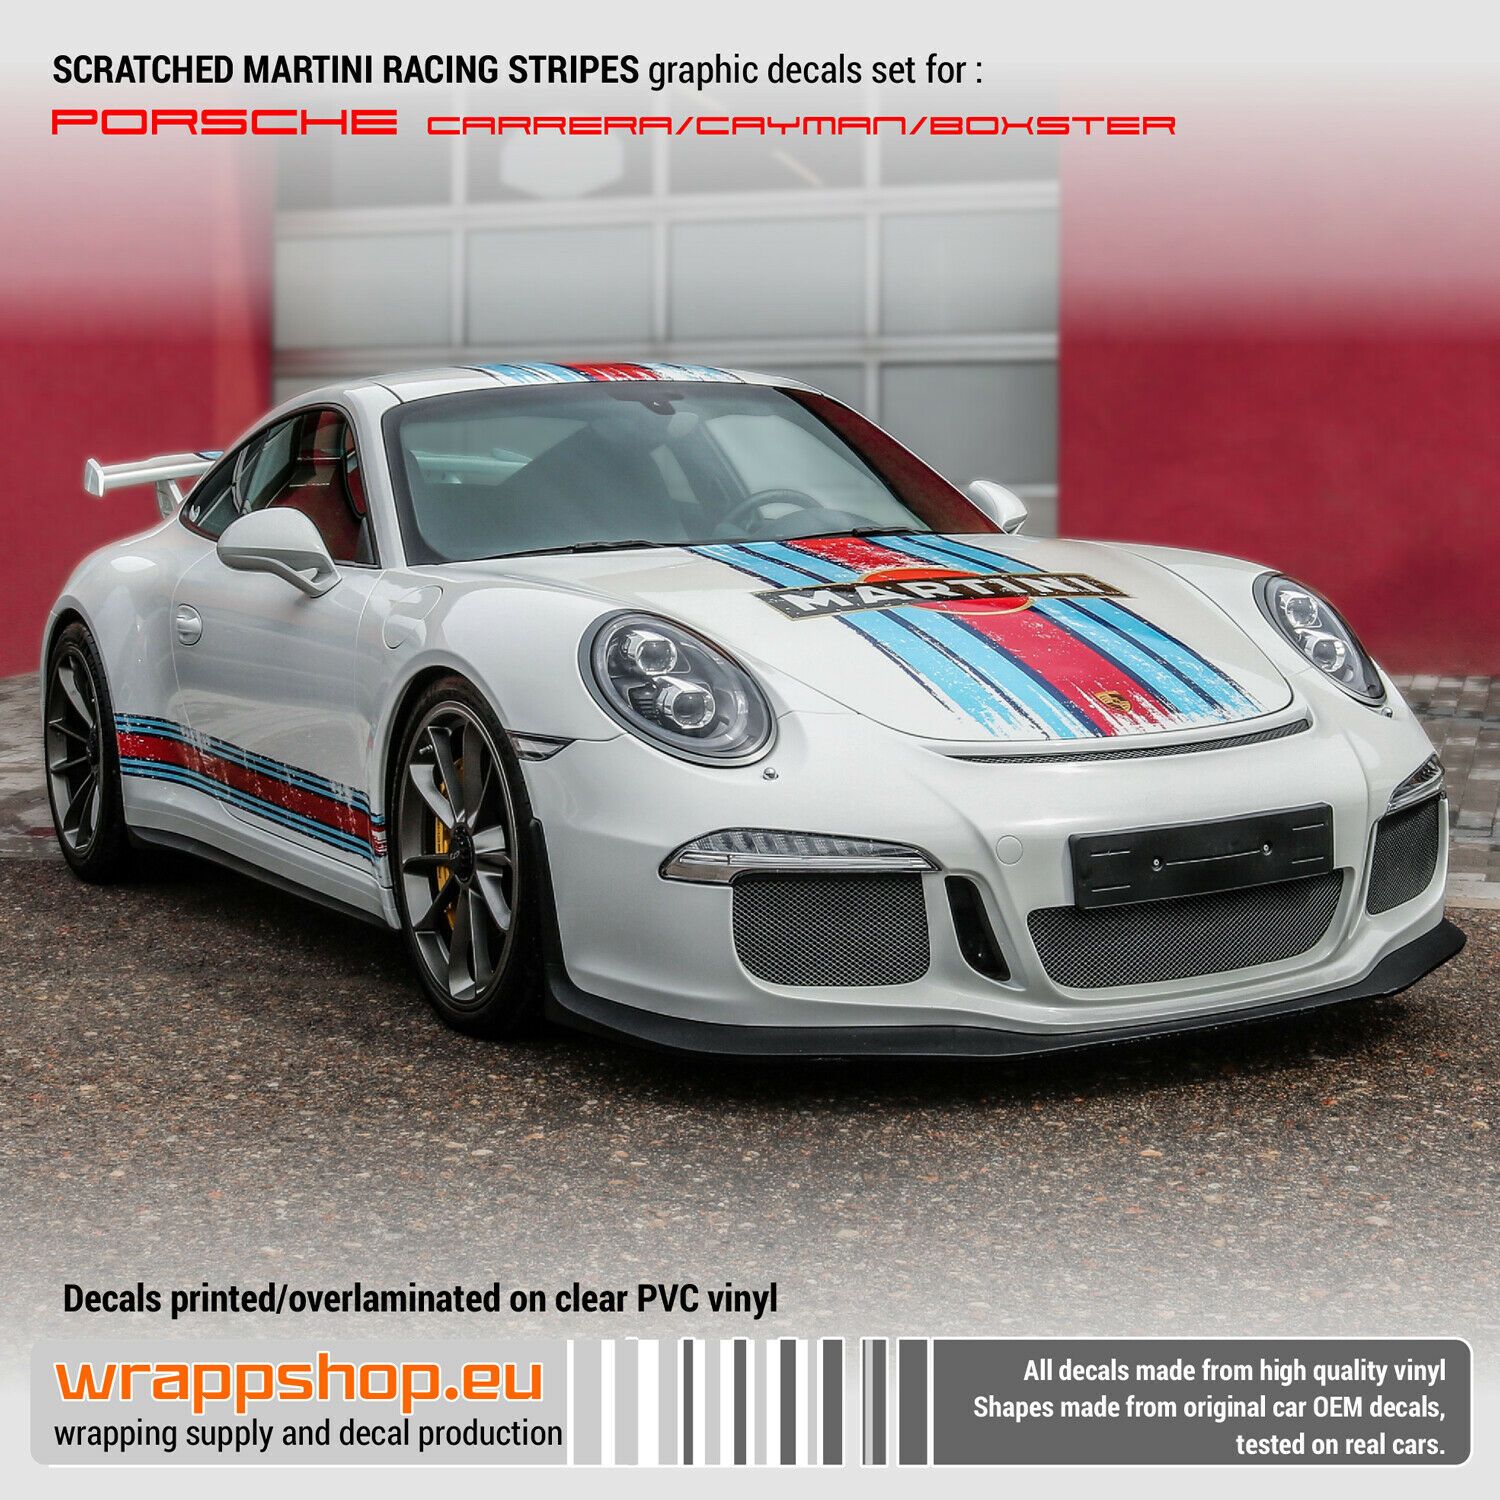 Scratched Martini Racing Stripes For Porsche Carrera Cayman Boxster Ebay